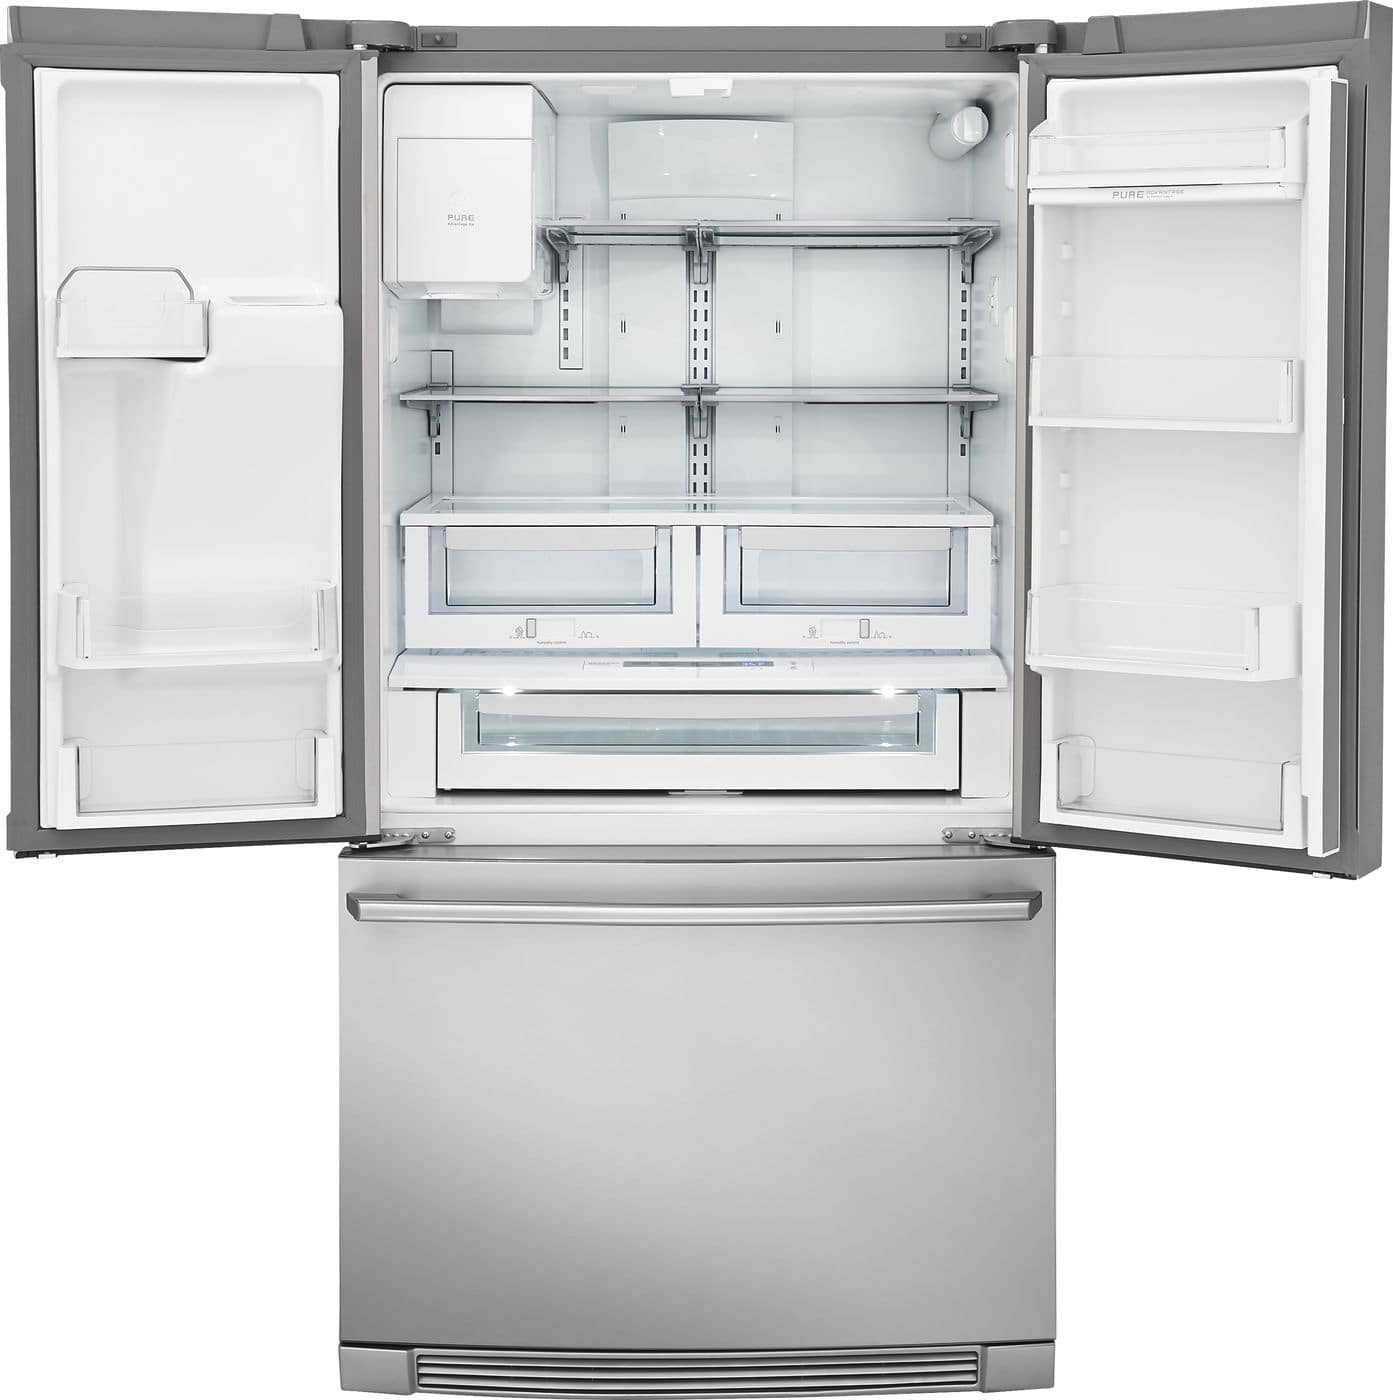 Model: EW23BC87SS | Counter-Depth French Door Refrigerator with Wave-Touch® Controls